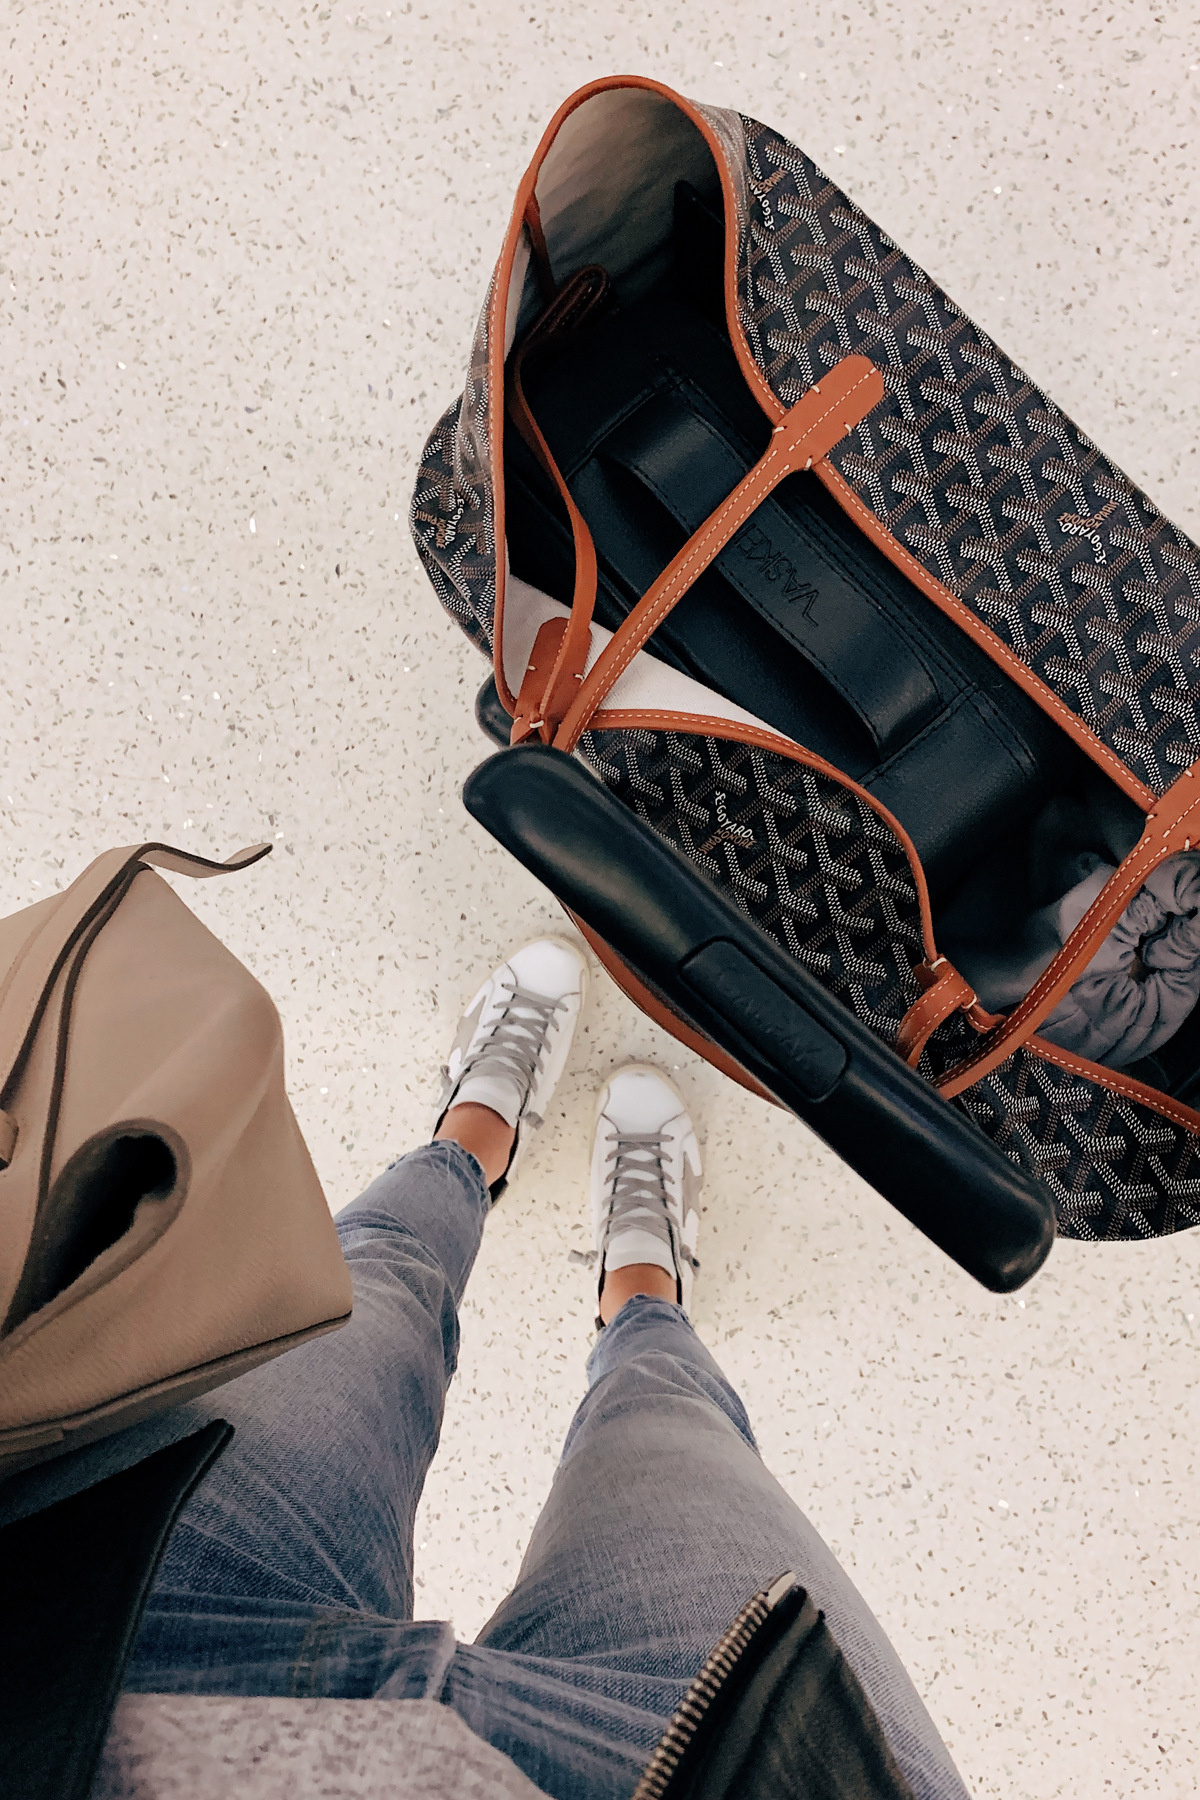 Fashion Jackson Travel Outfit Goyard Tote Airport Style